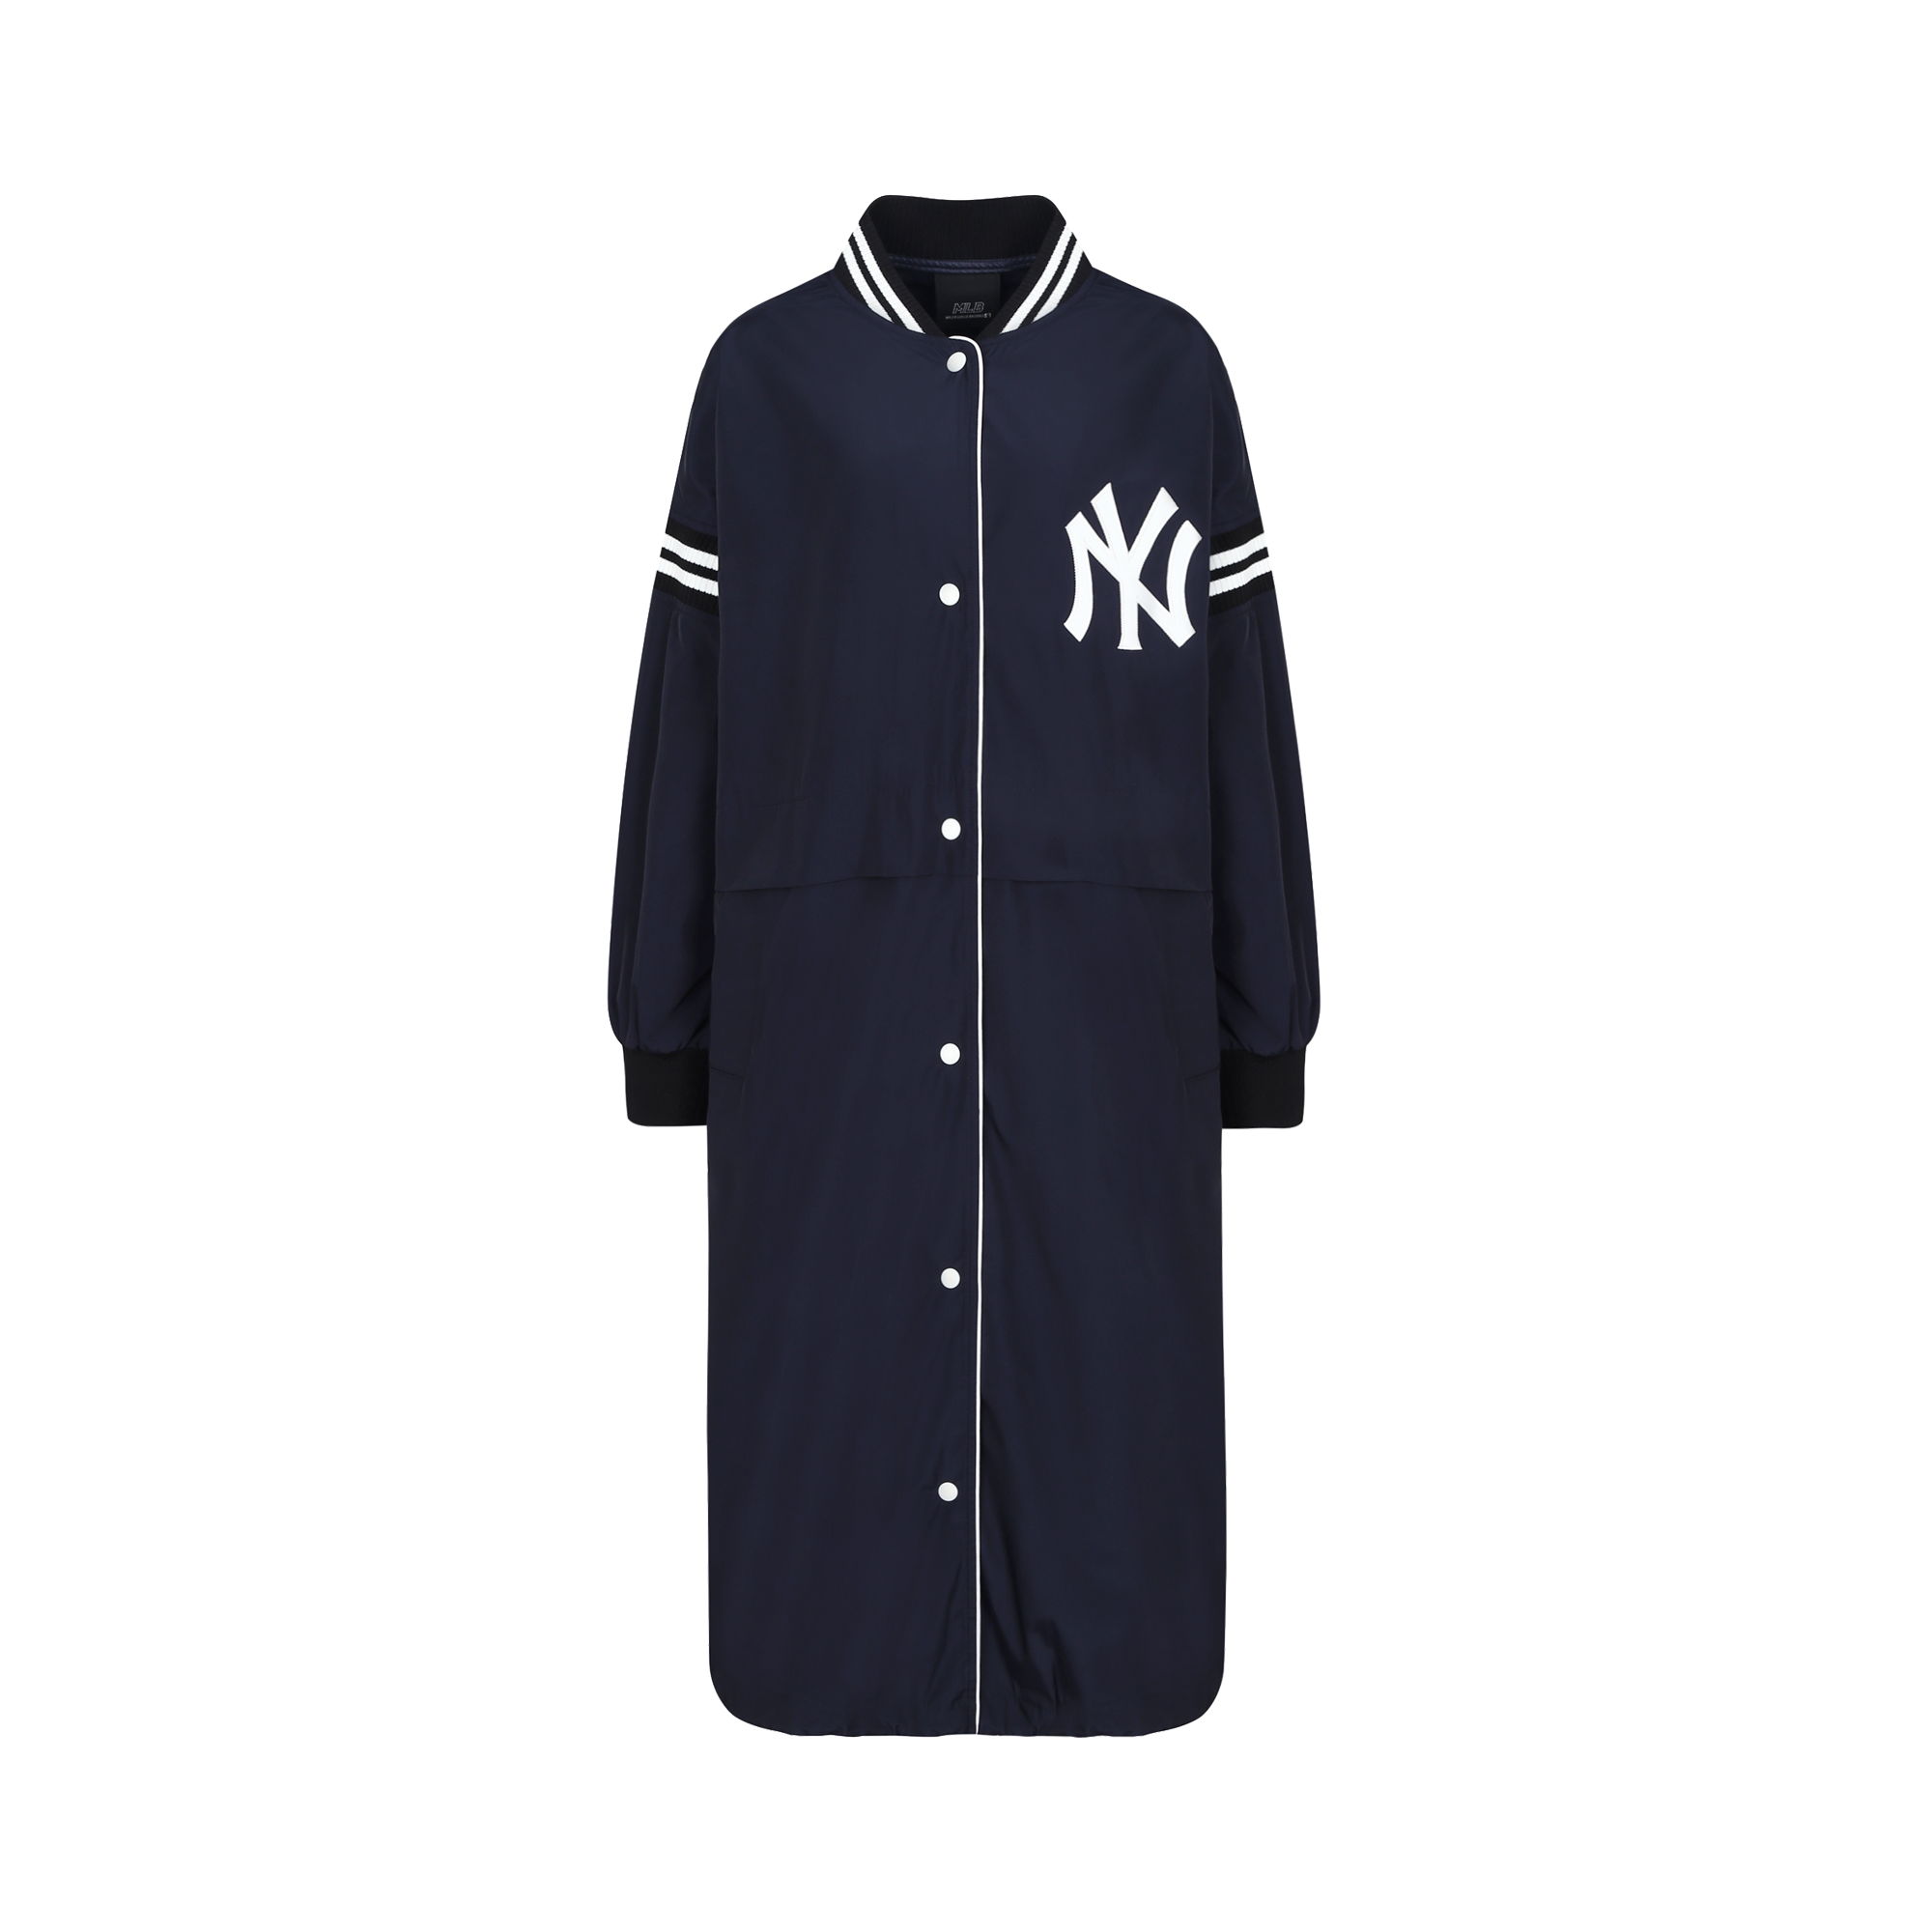 WOMEN'S NEW YORK YANKEES LONG VARSITY JACKET